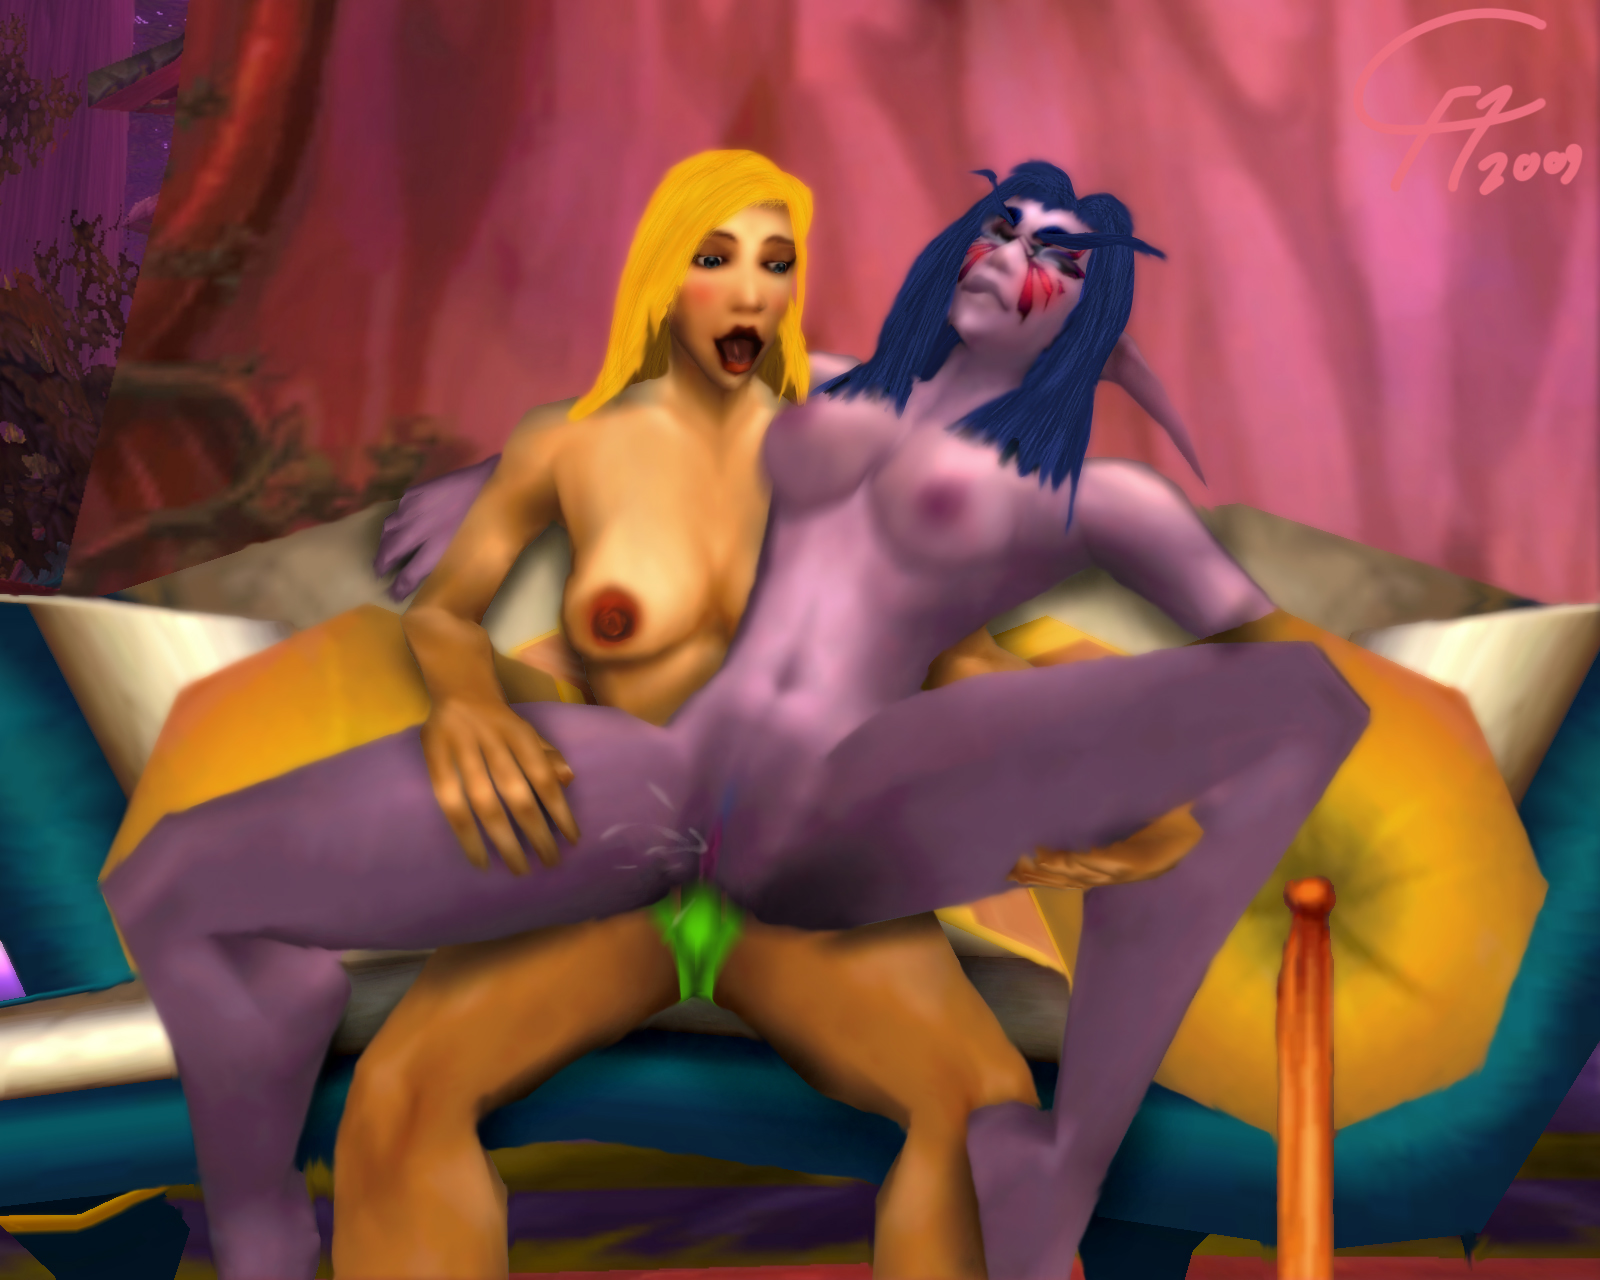 All gallery wow porncraft fucked clips